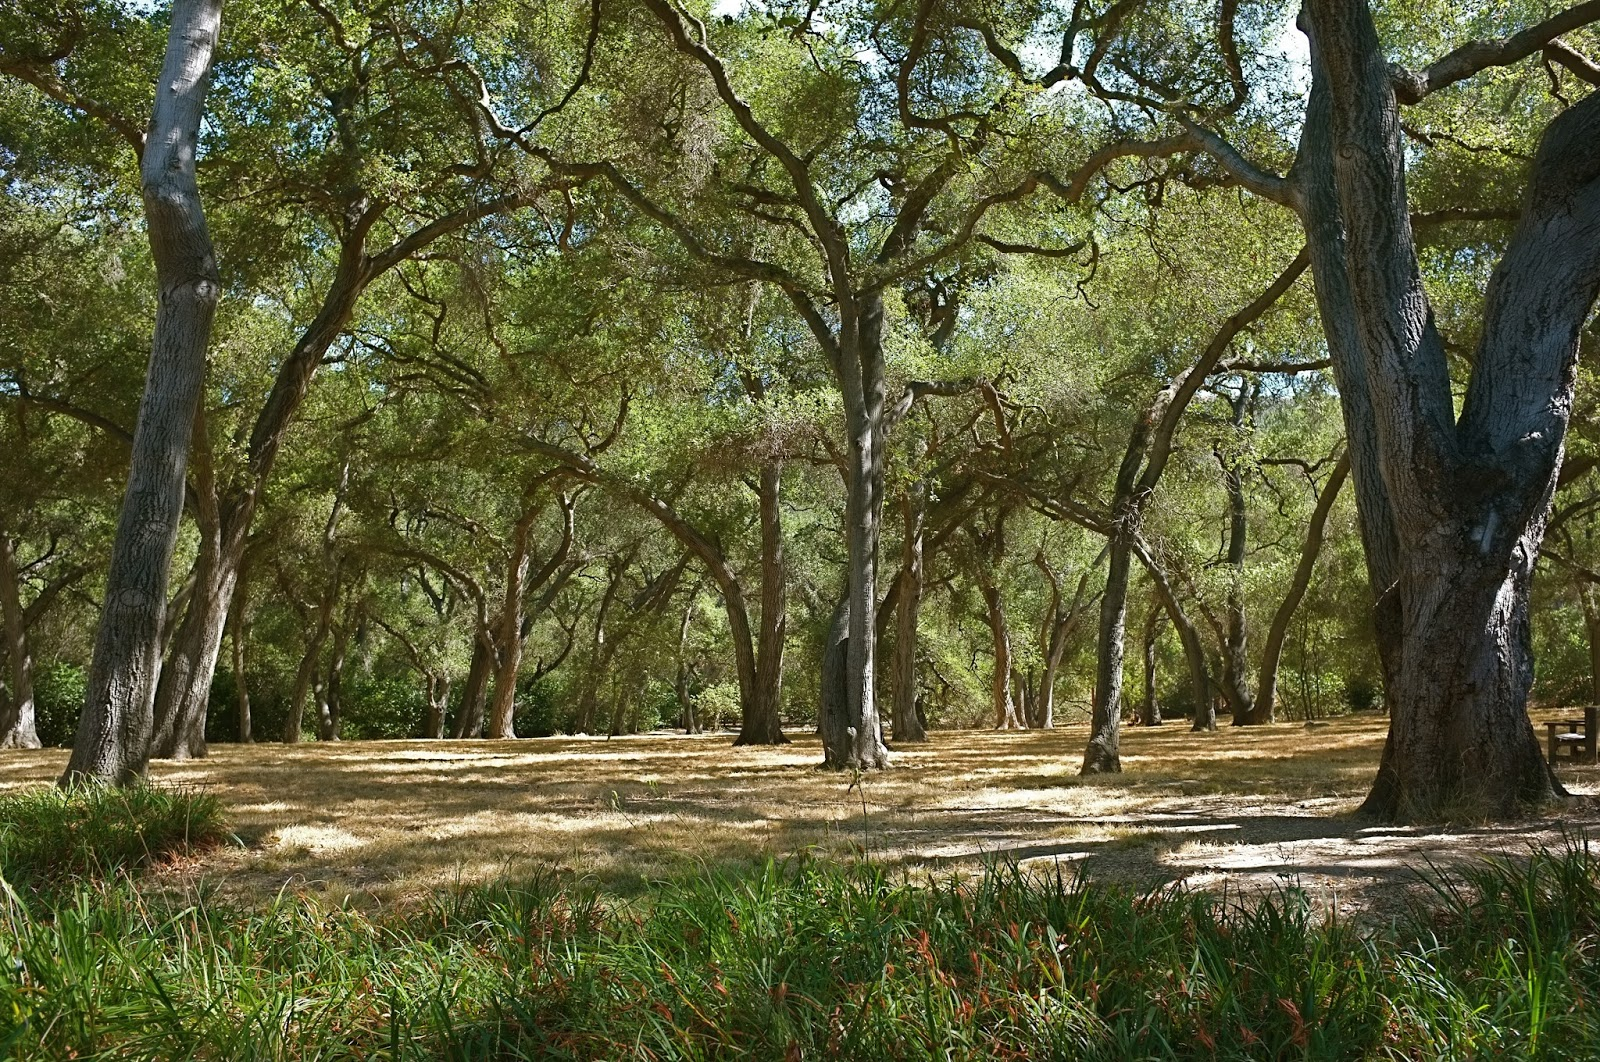 Passage Paradis: Descanso Gardens - In L.A. We are Spoilt for Choice